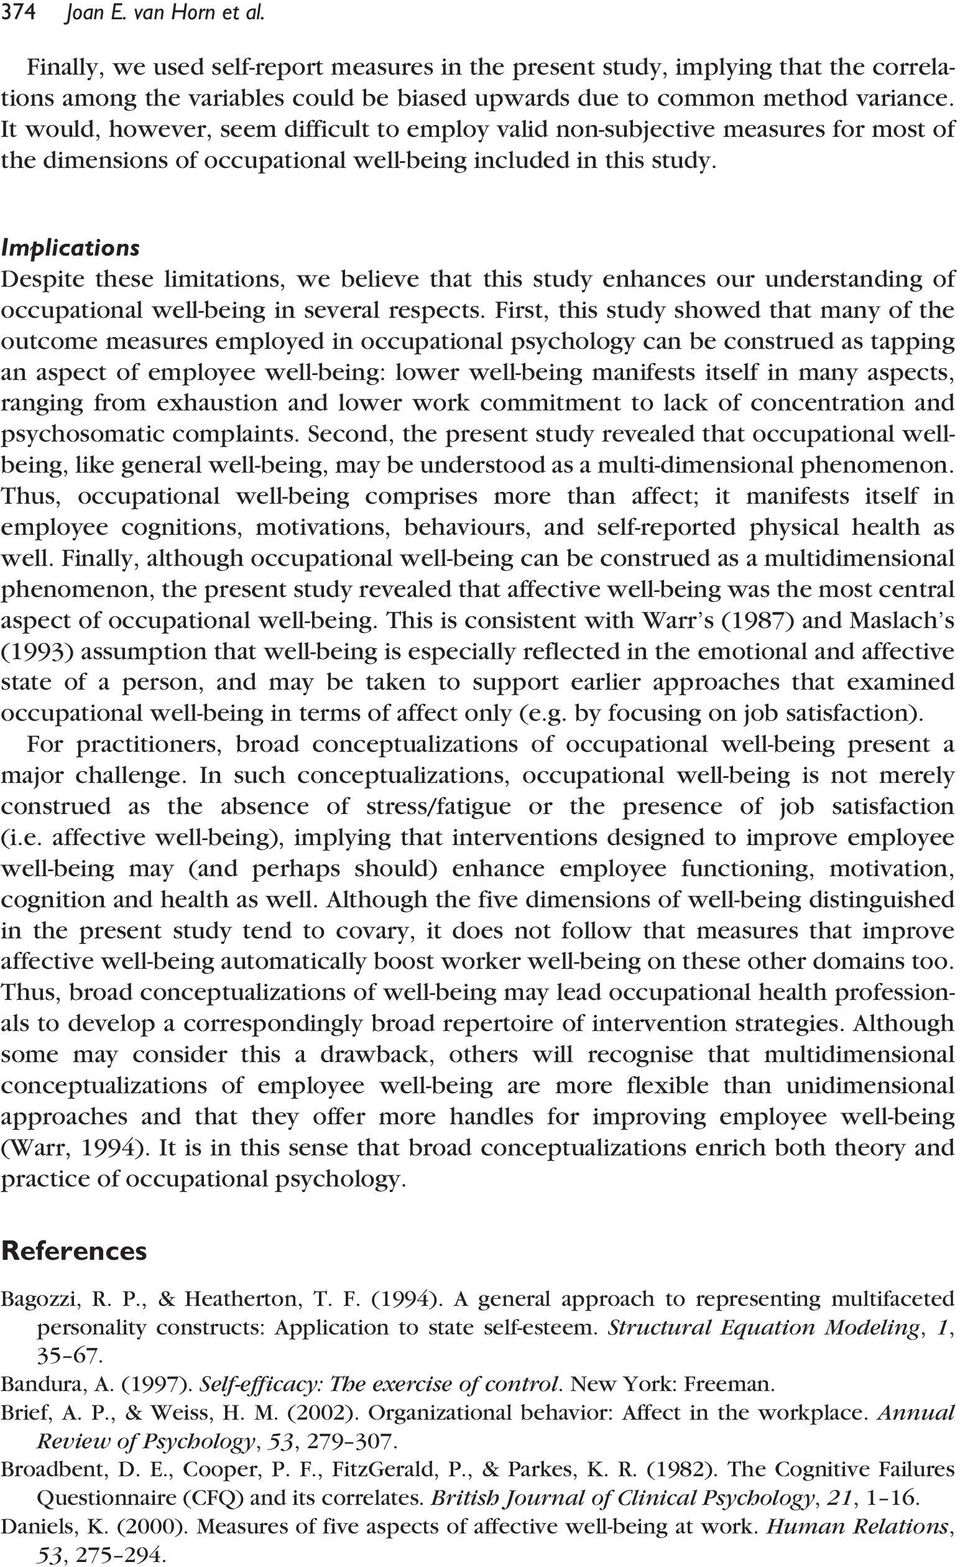 Implications Despite these limitations, we believe that this study enhances our understanding of occupational well-being in several respects.